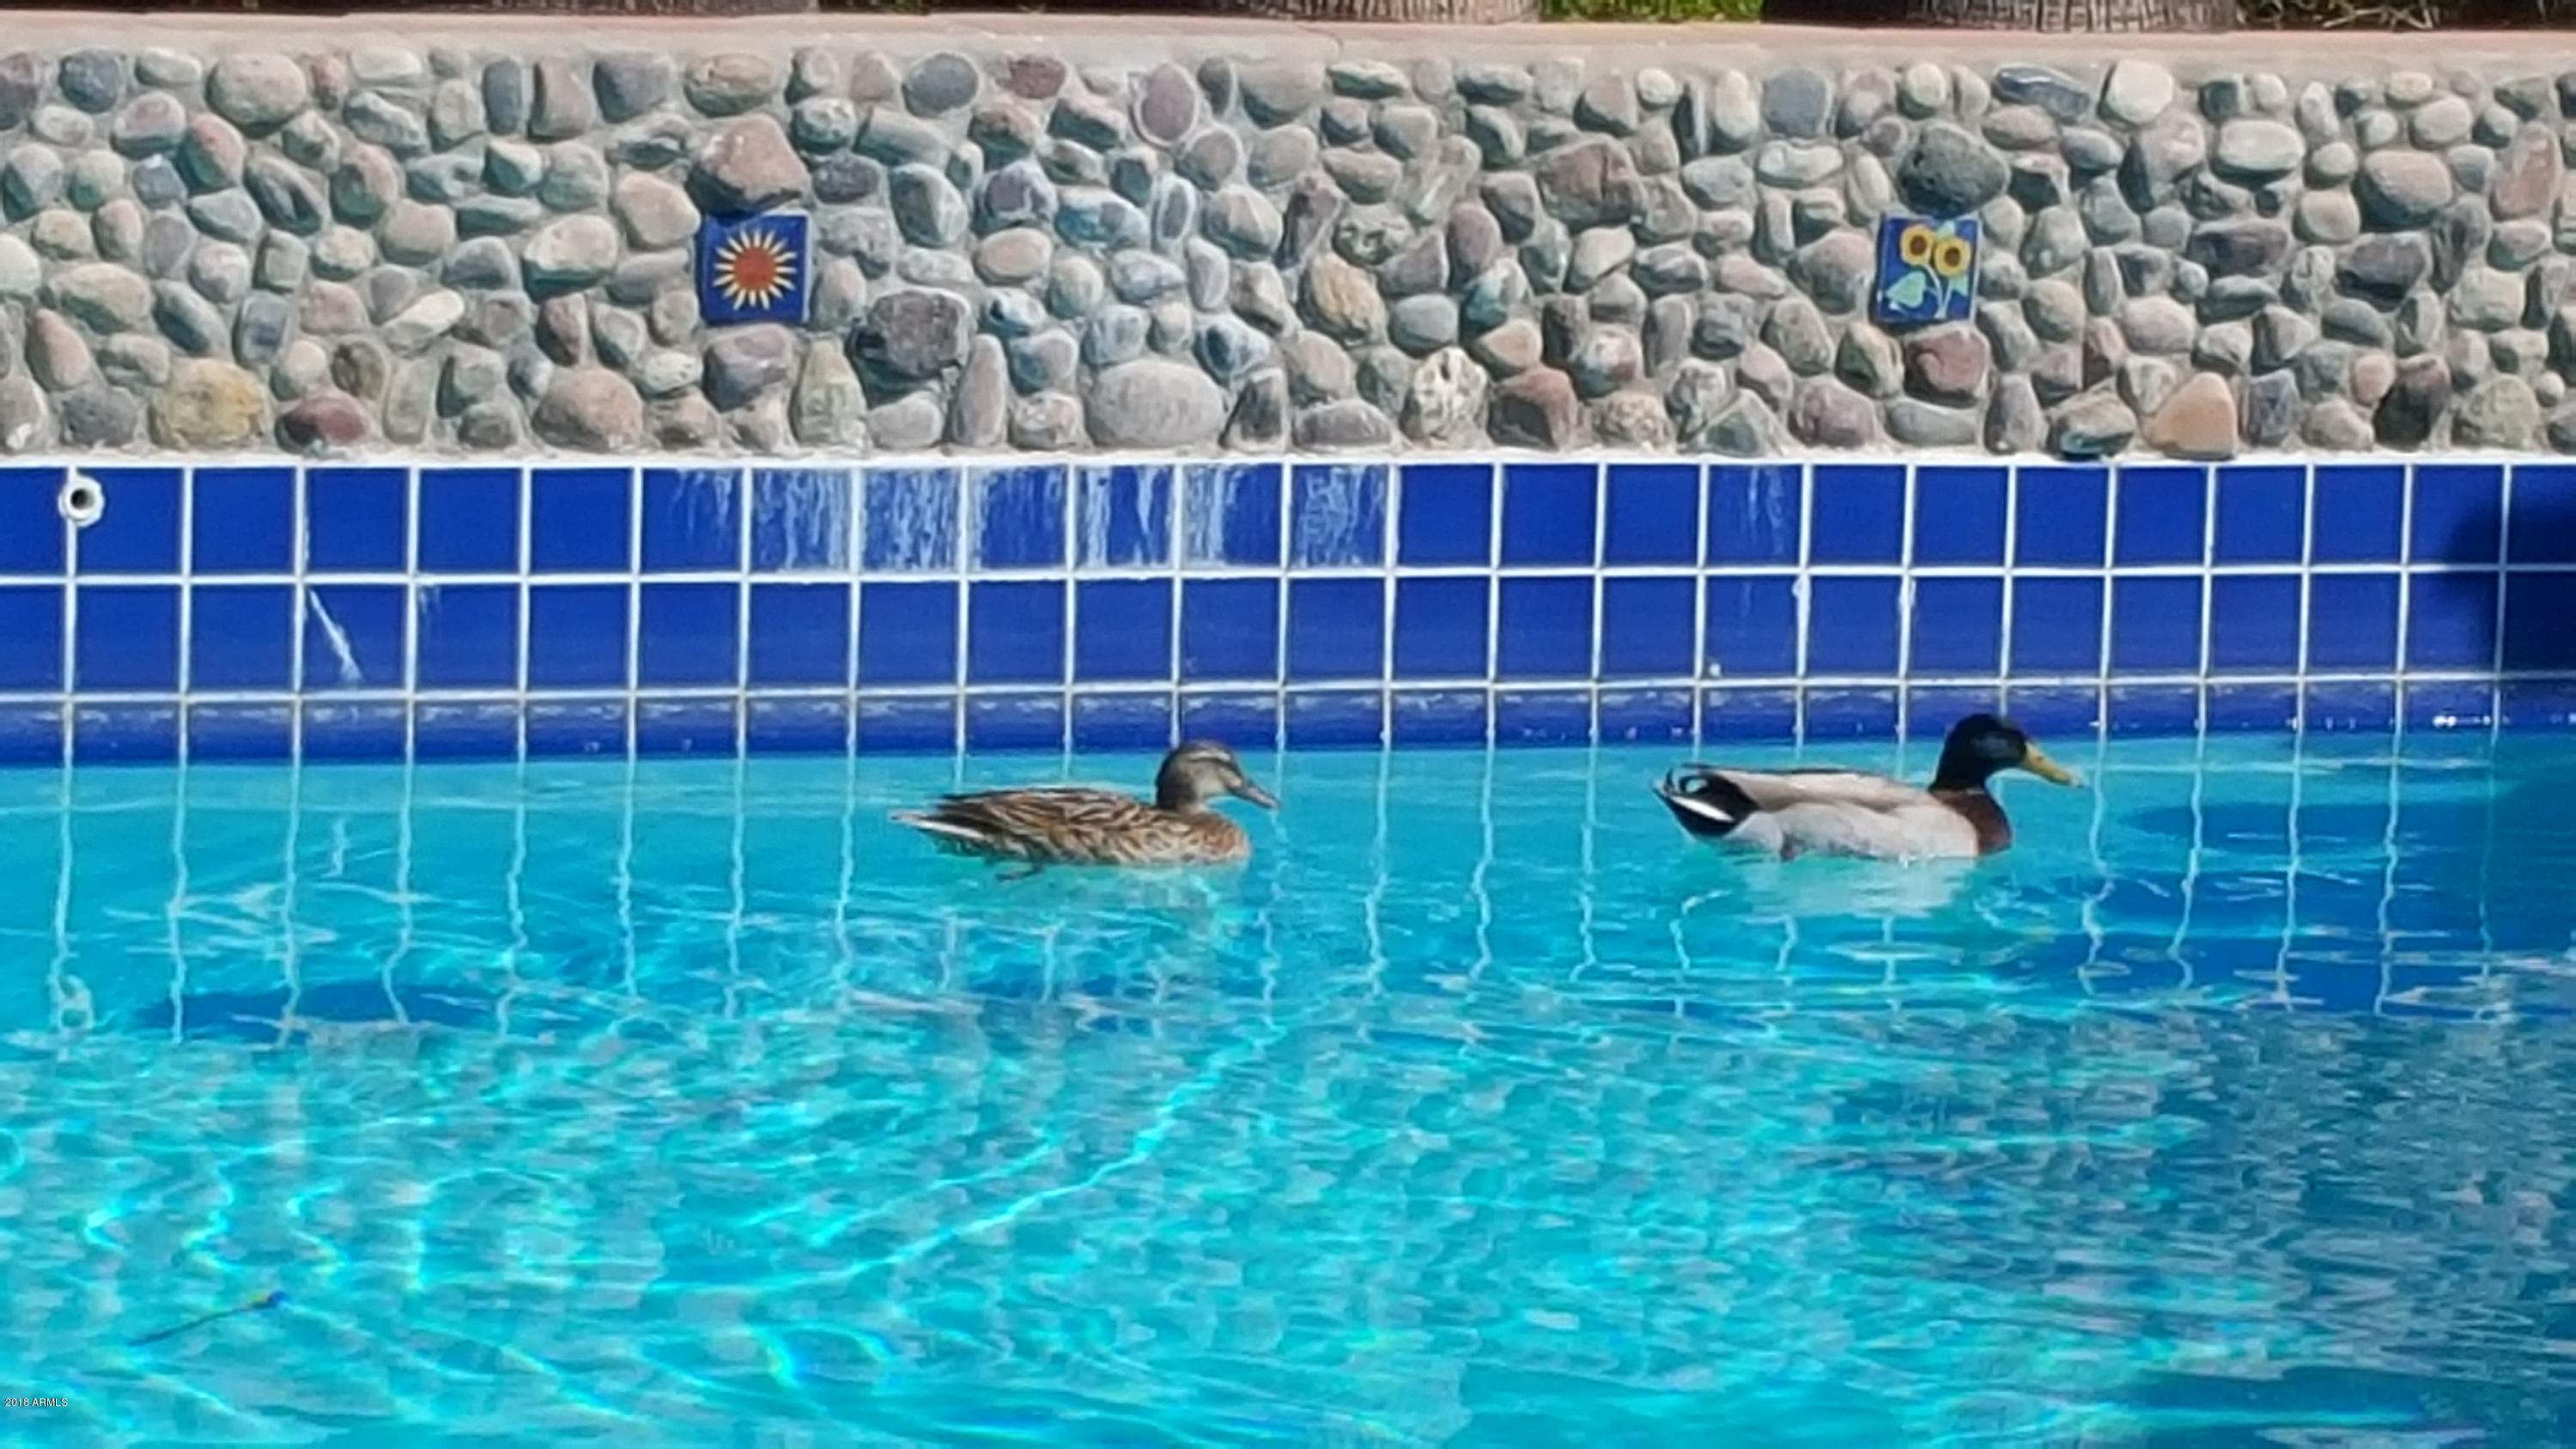 Pool with ducks